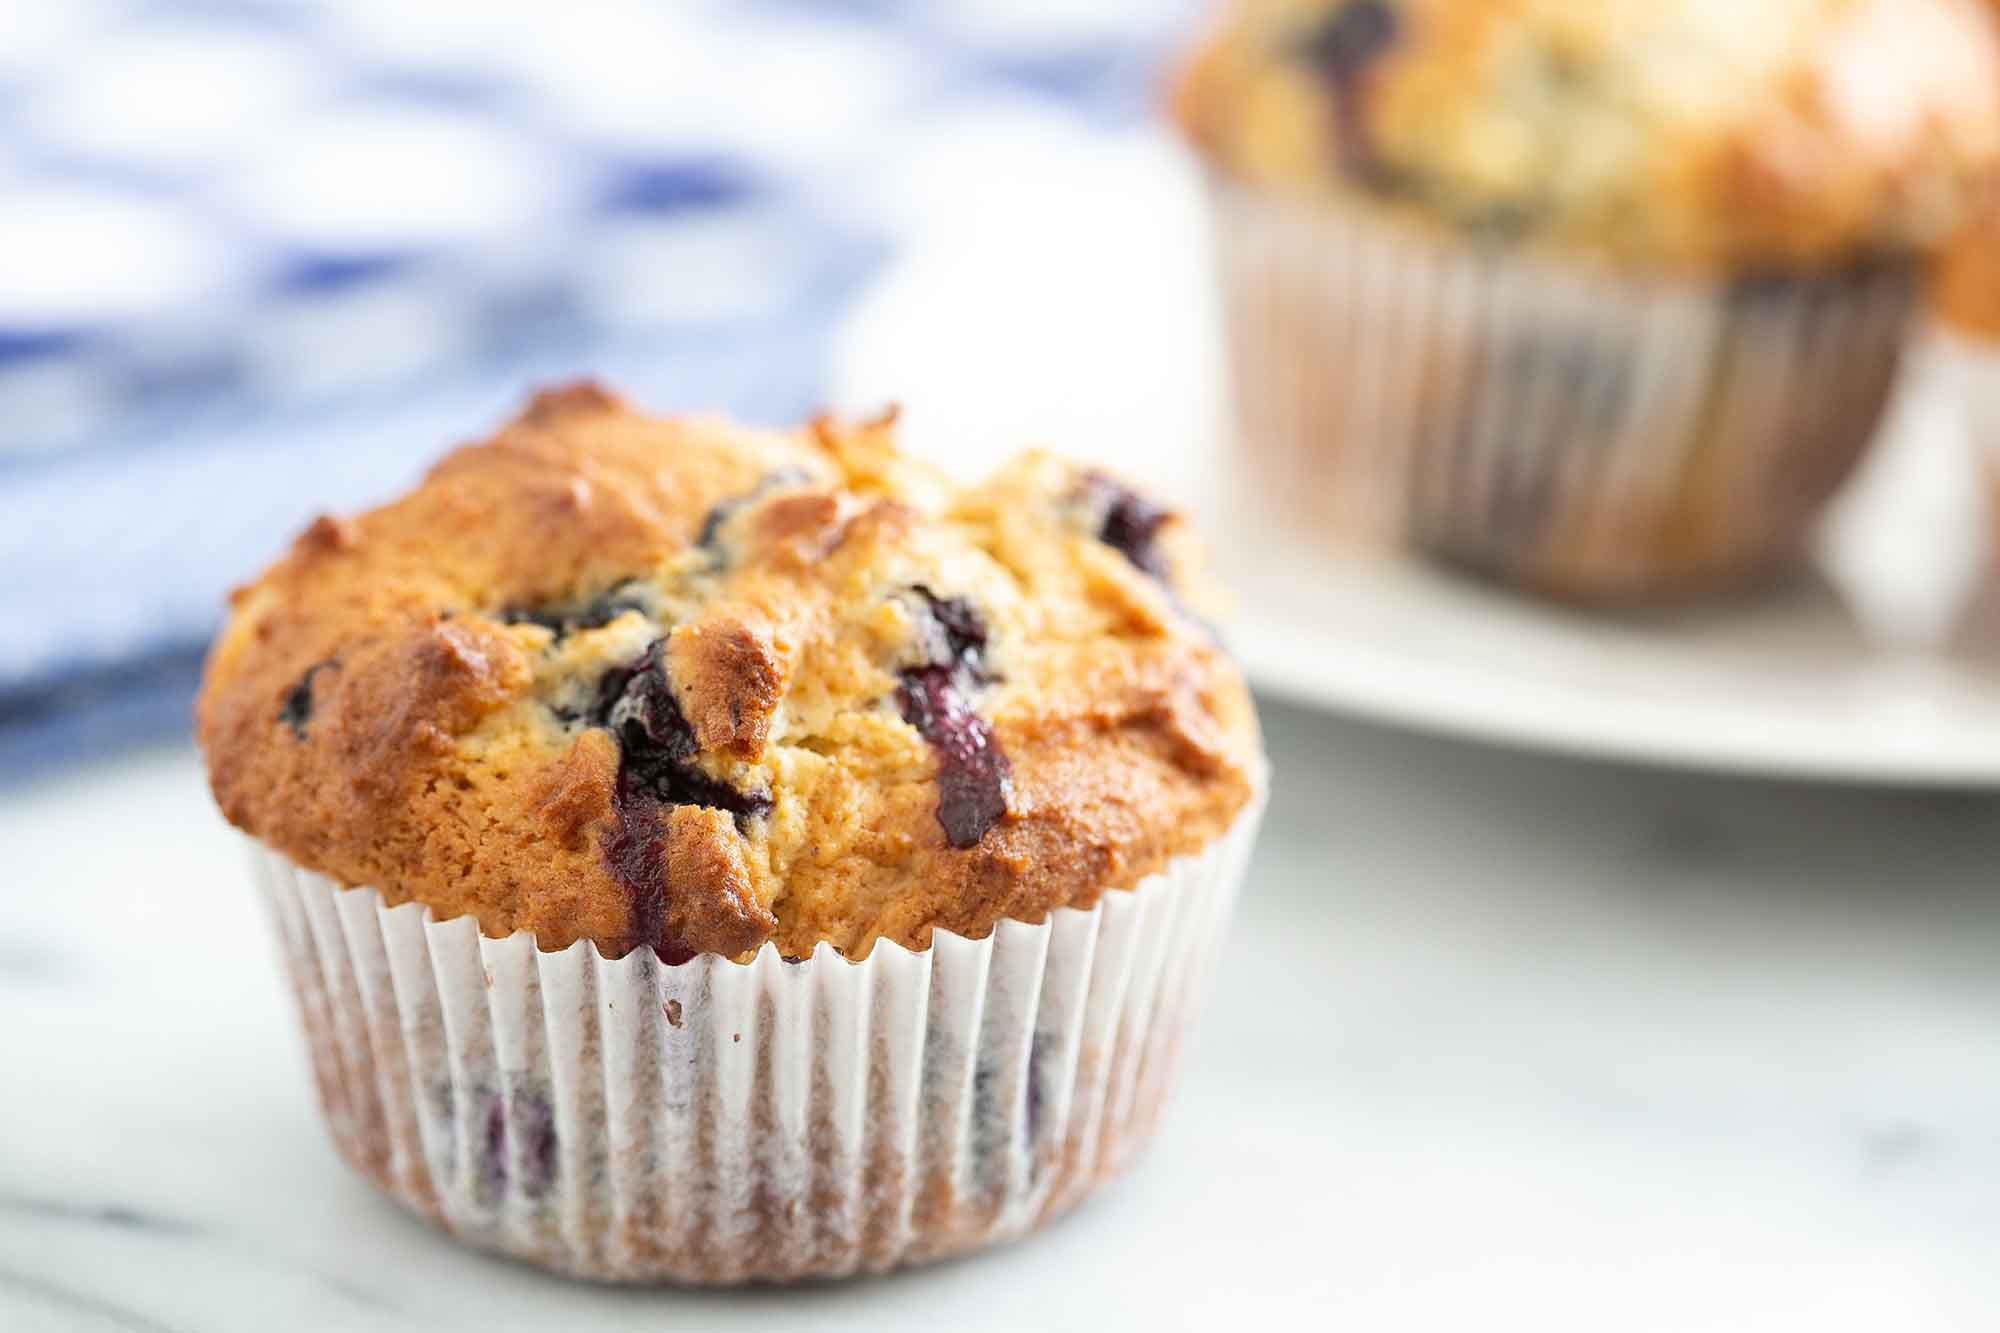 Easy Blueberry Muffins ready to eat